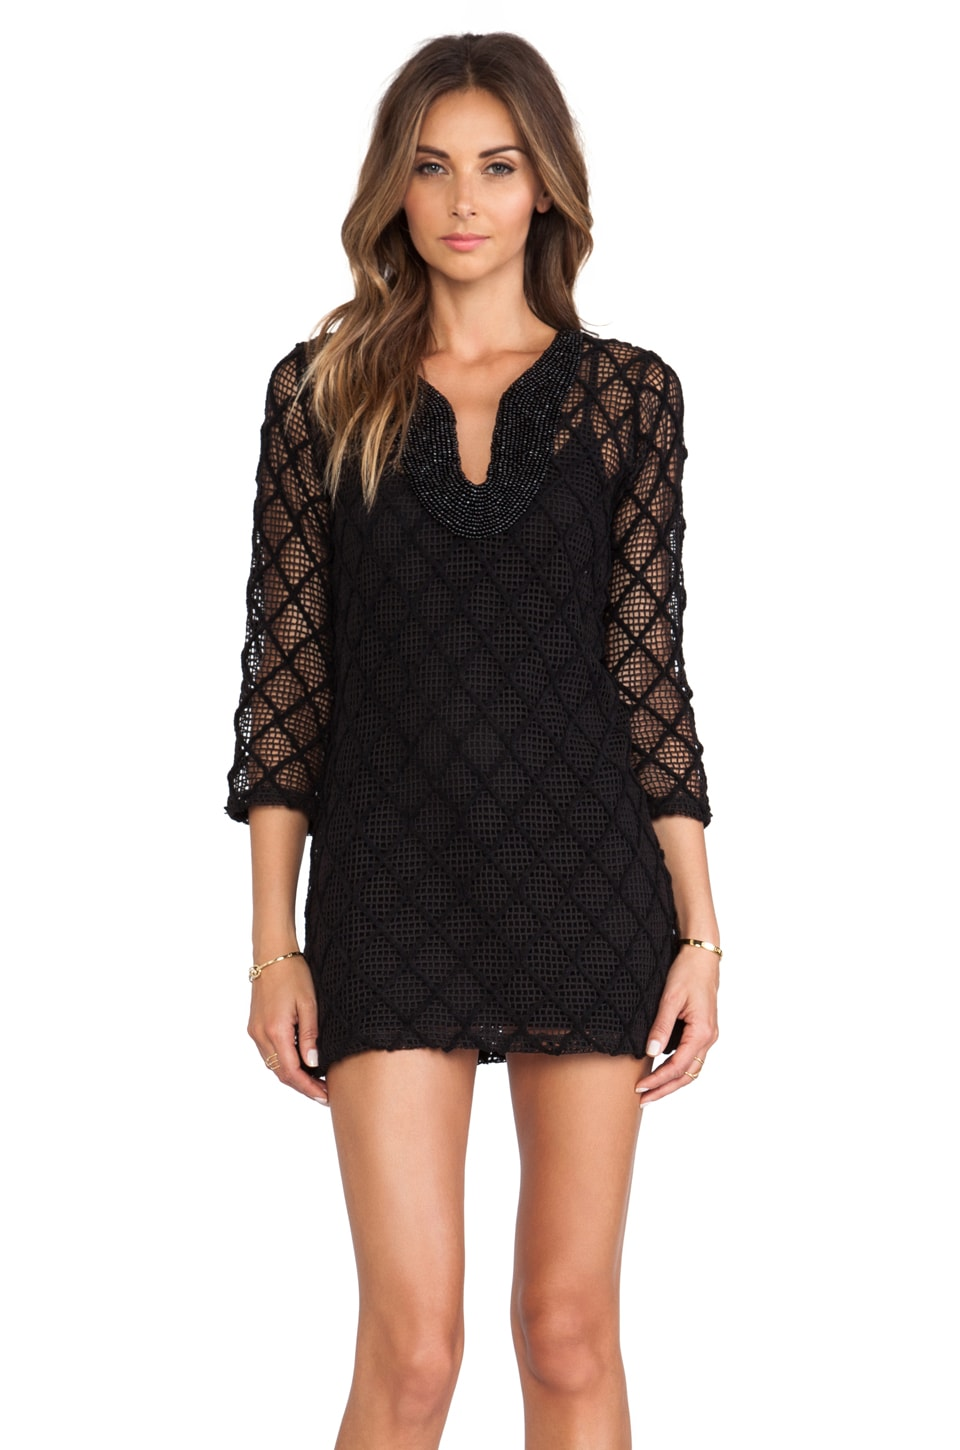 T-Bags LosAngeles Long Sleeve Mini Dress in Black Crochet